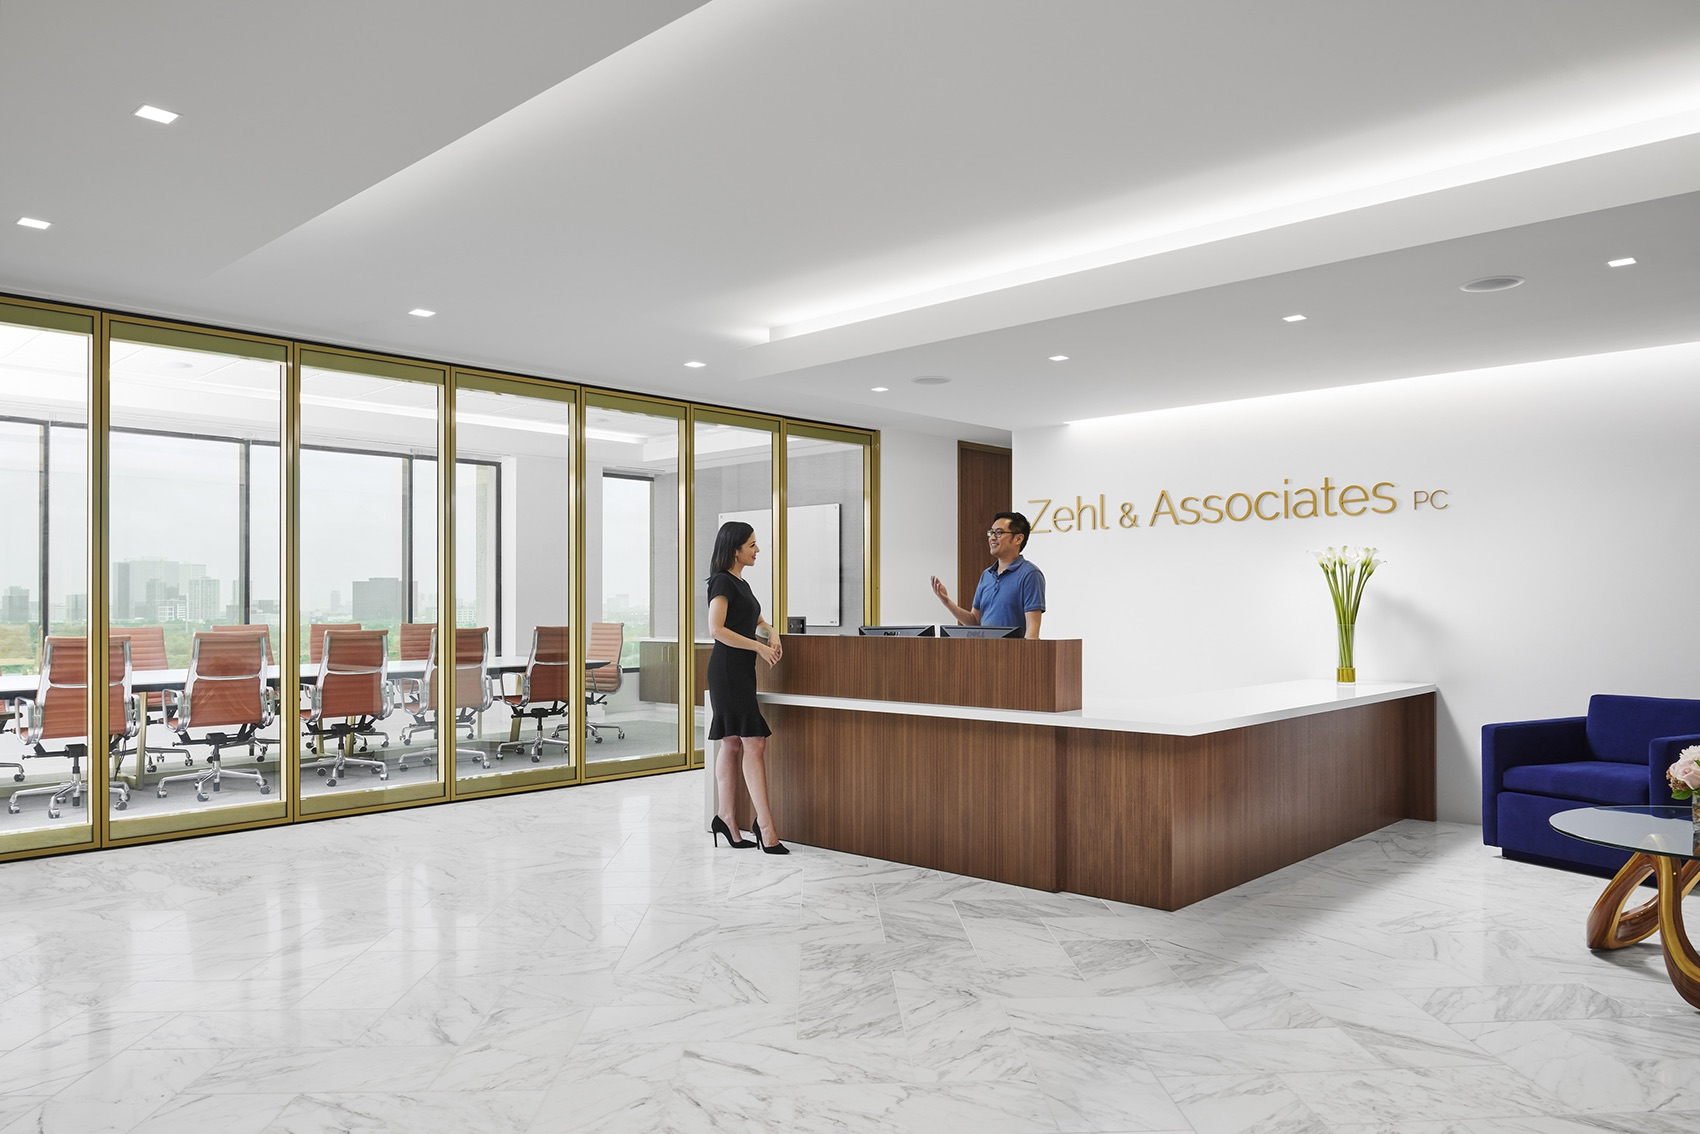 zehl-associates-houston-office-5